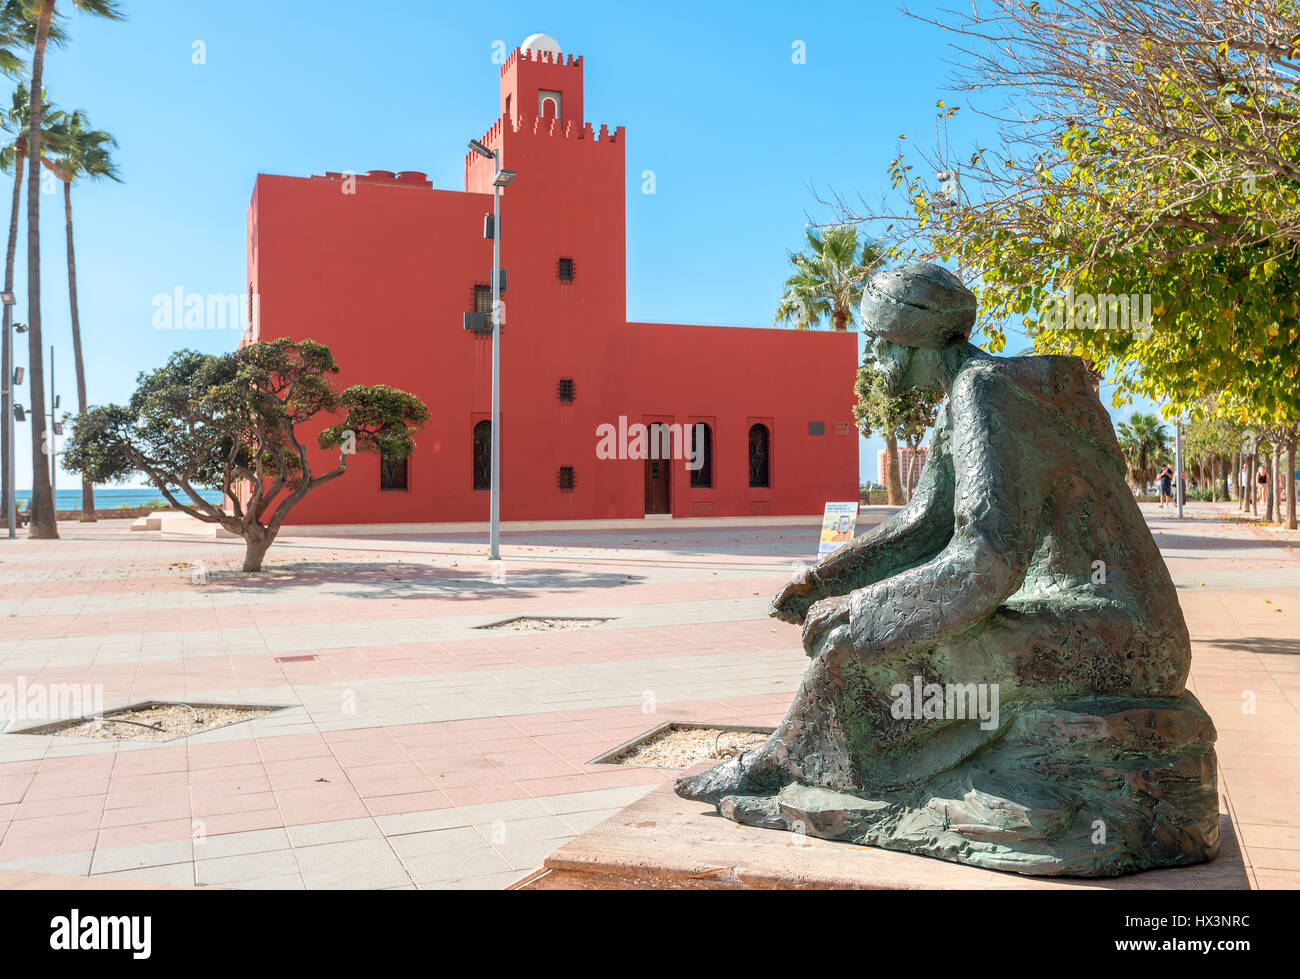 Monument of illustrious scholar Ibn al Baytar, (botanist and pharmacologist born at Middle Ages in Benalmadena) - Stock Image